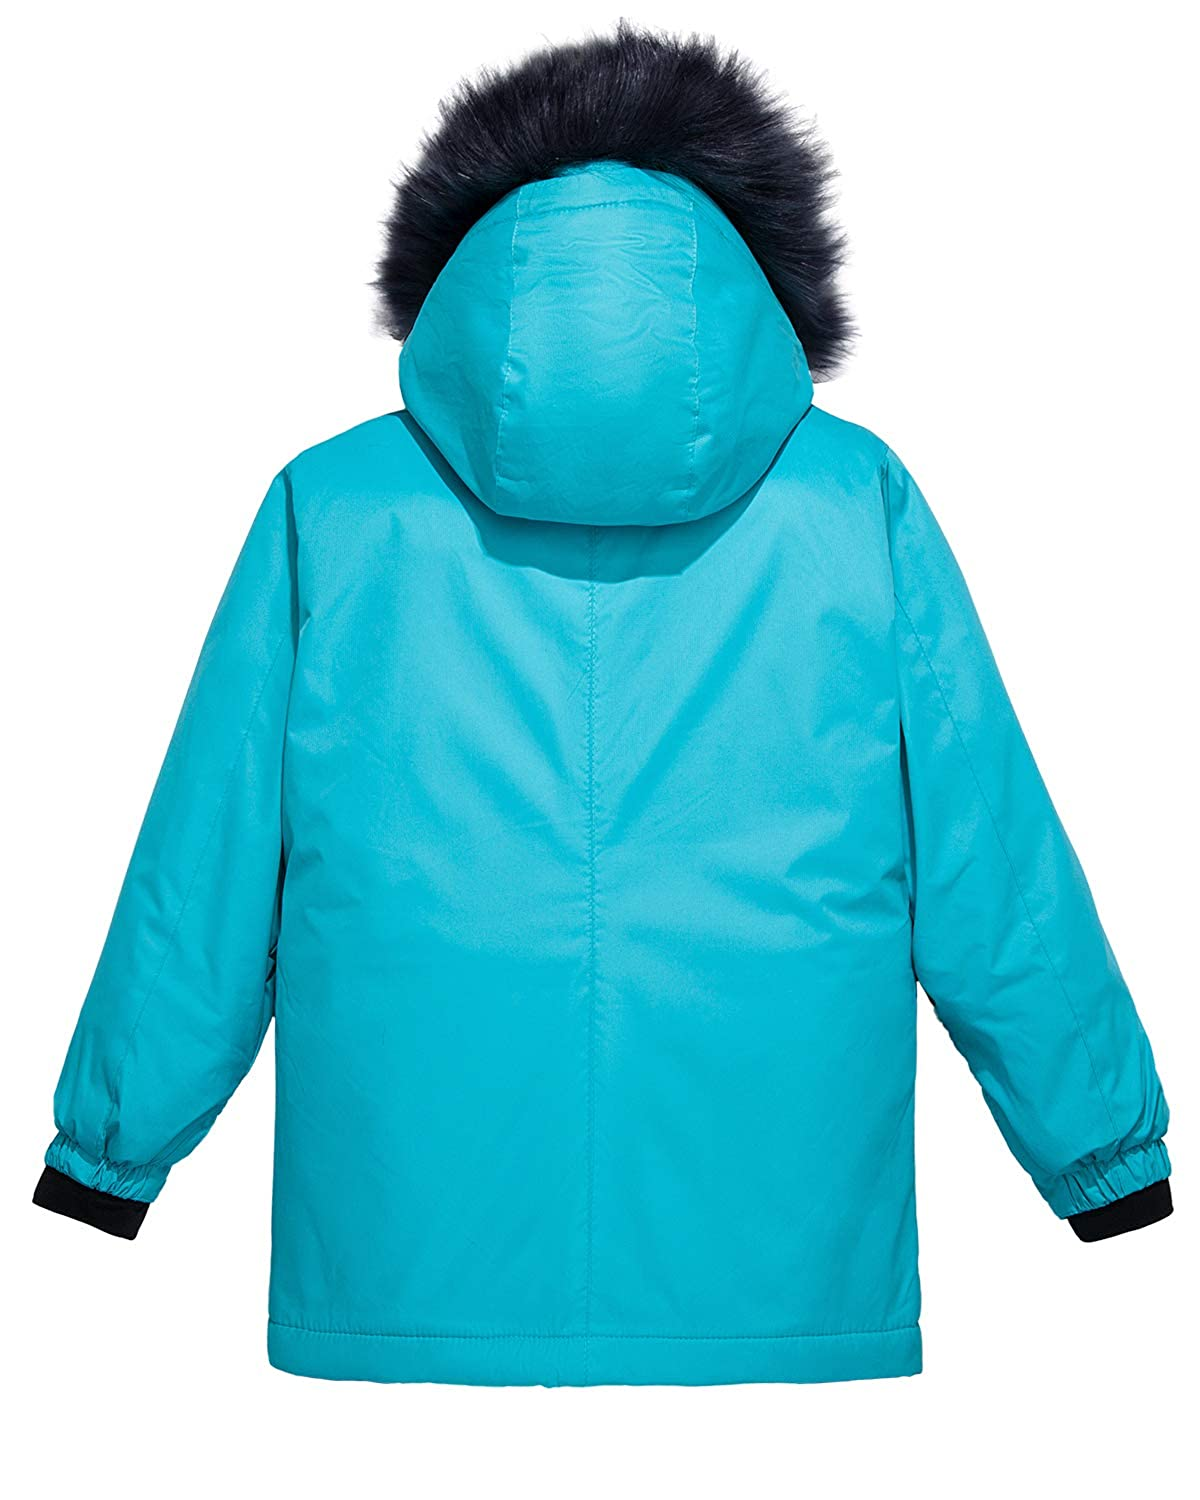 Wantdo Girls Waterproof Ski Jacket Parka Outdoor Jacket Windproof Warm Winter Coat